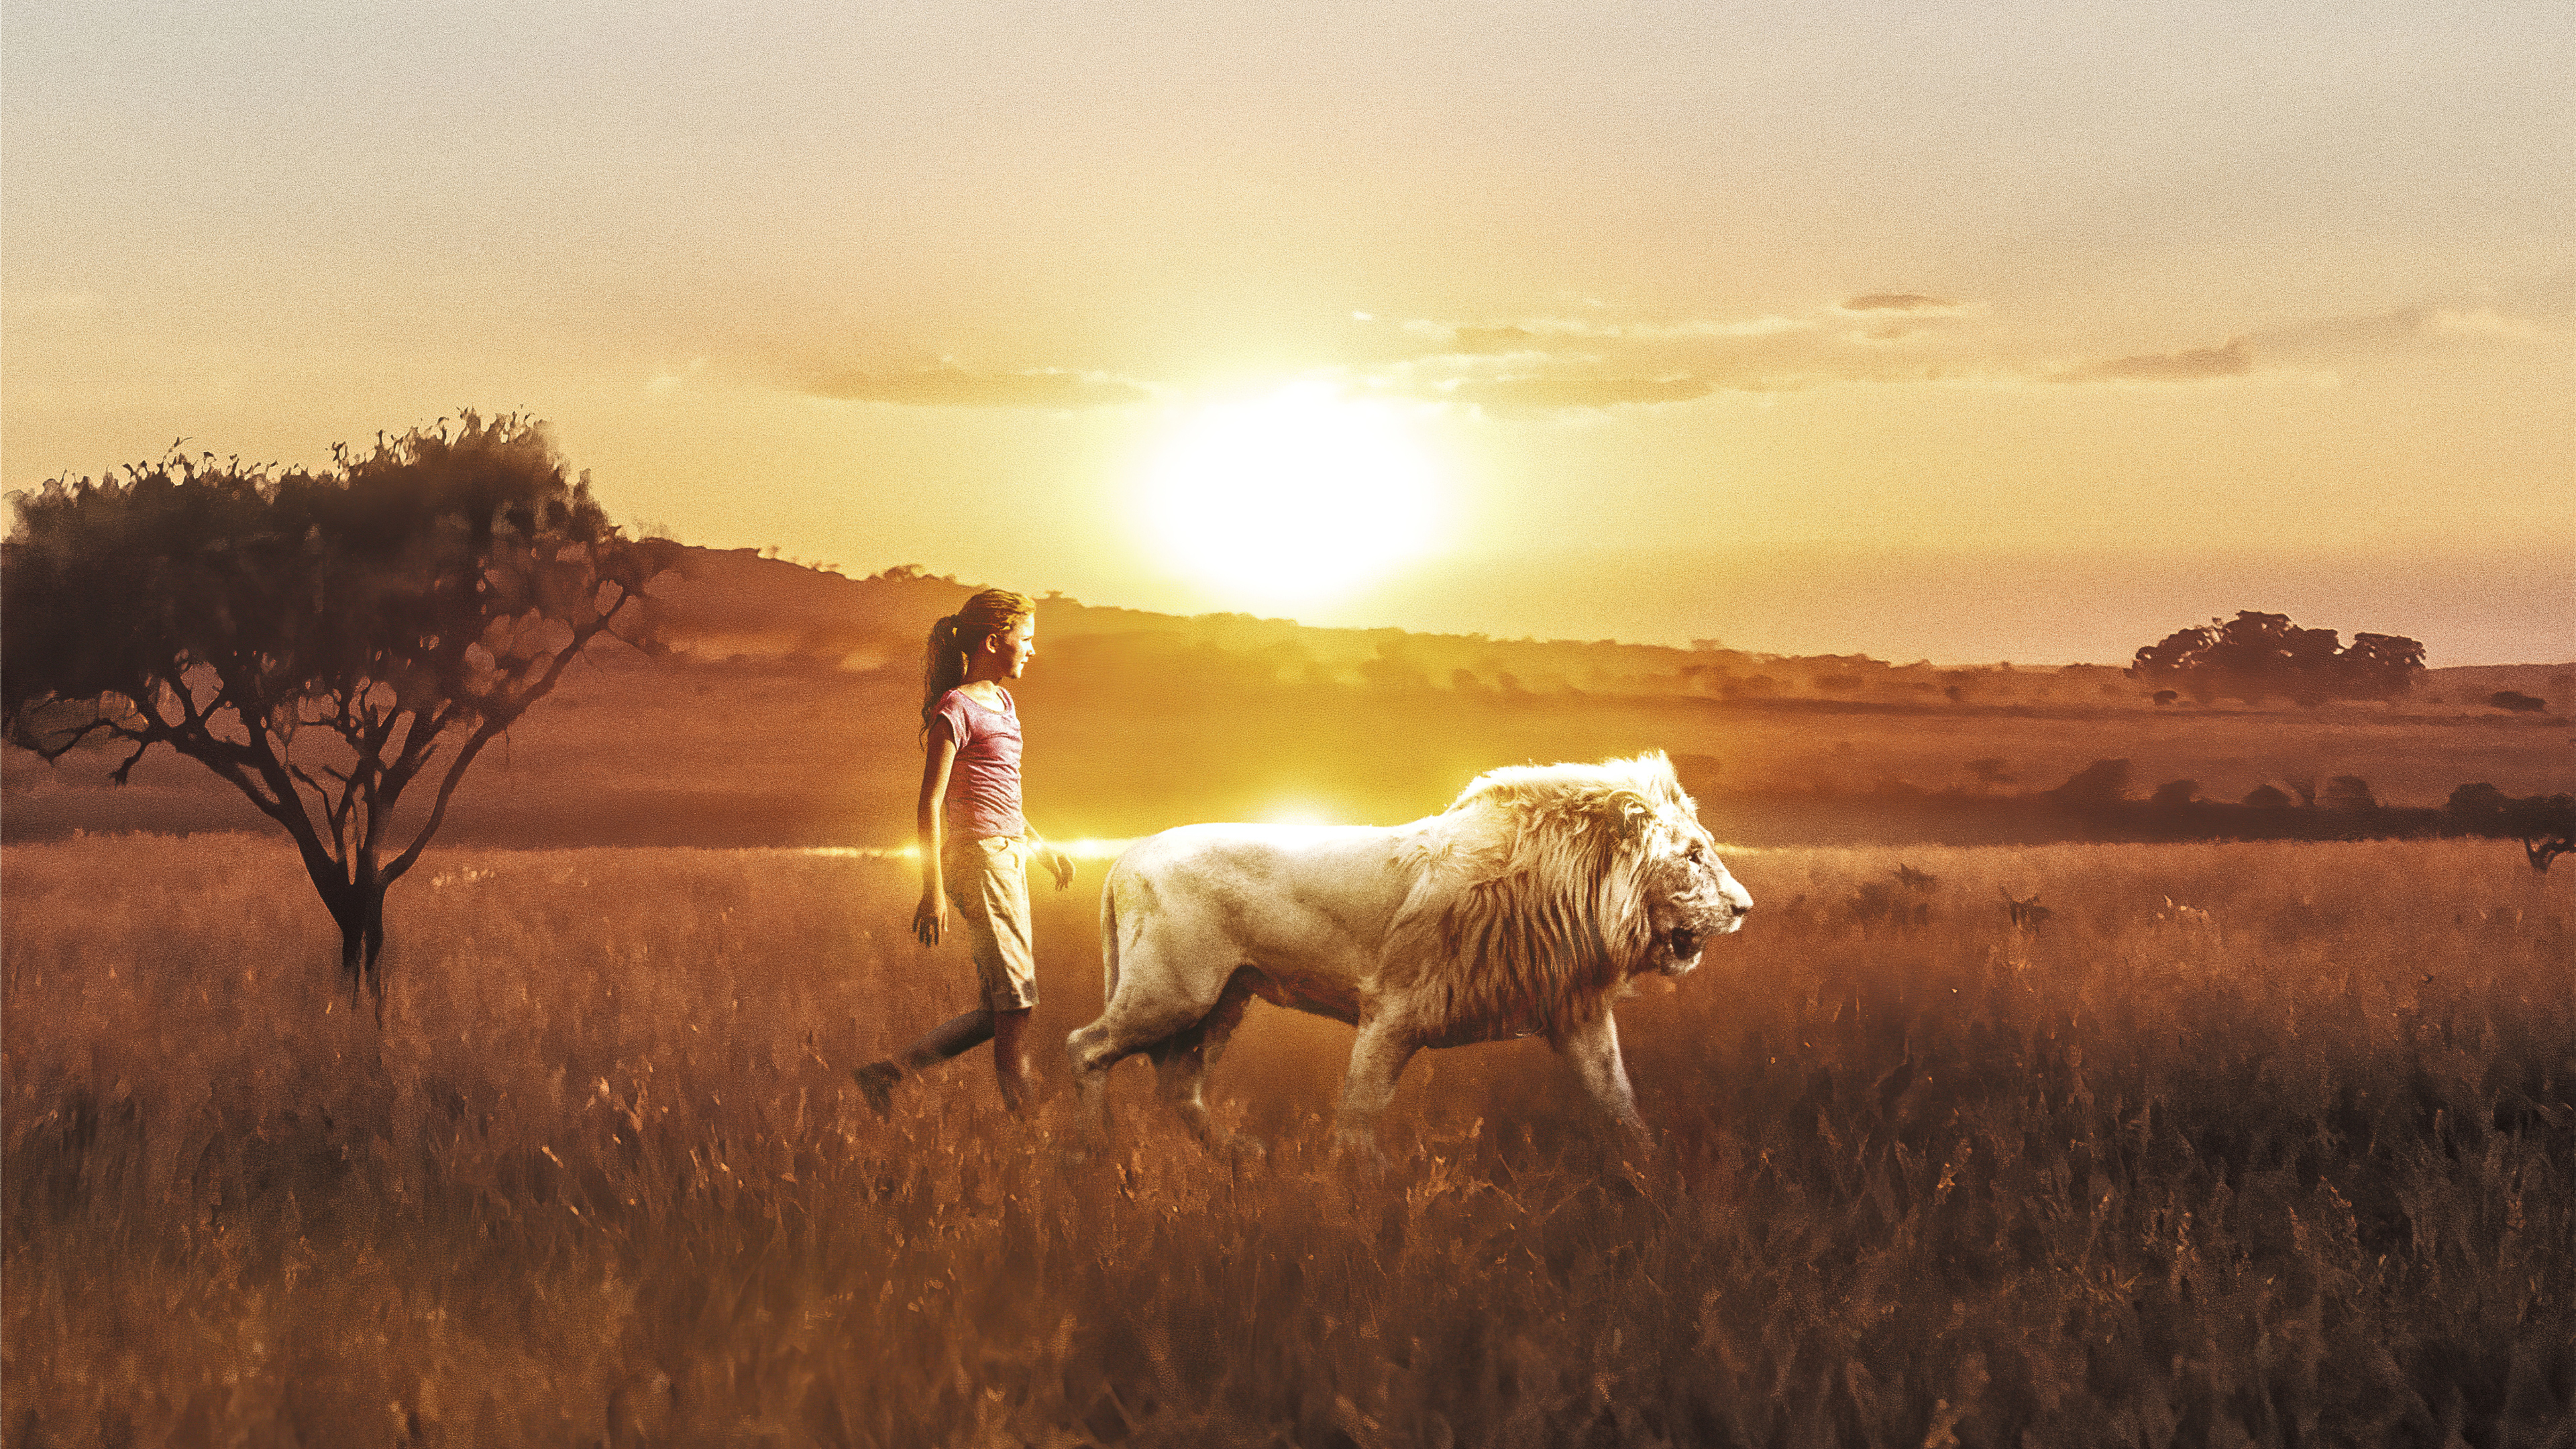 mia and the white lion 1589579136 - Mia And The White Lion - Mia And The White Lion wallpapers, Mia And The White Lion 4k wallpapers